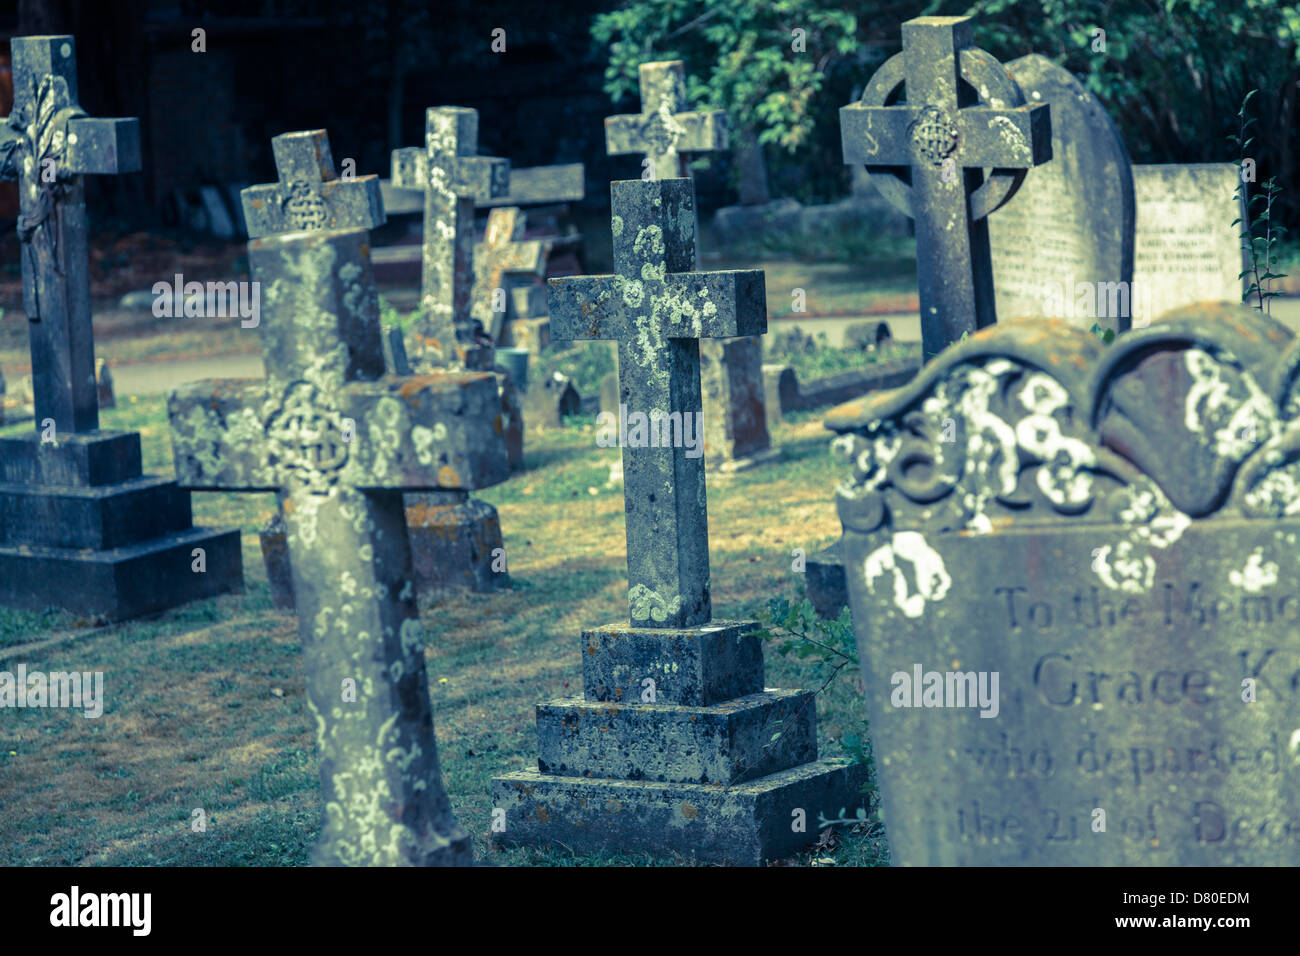 Old, weathered Grave stones in a English village church - Stock Image